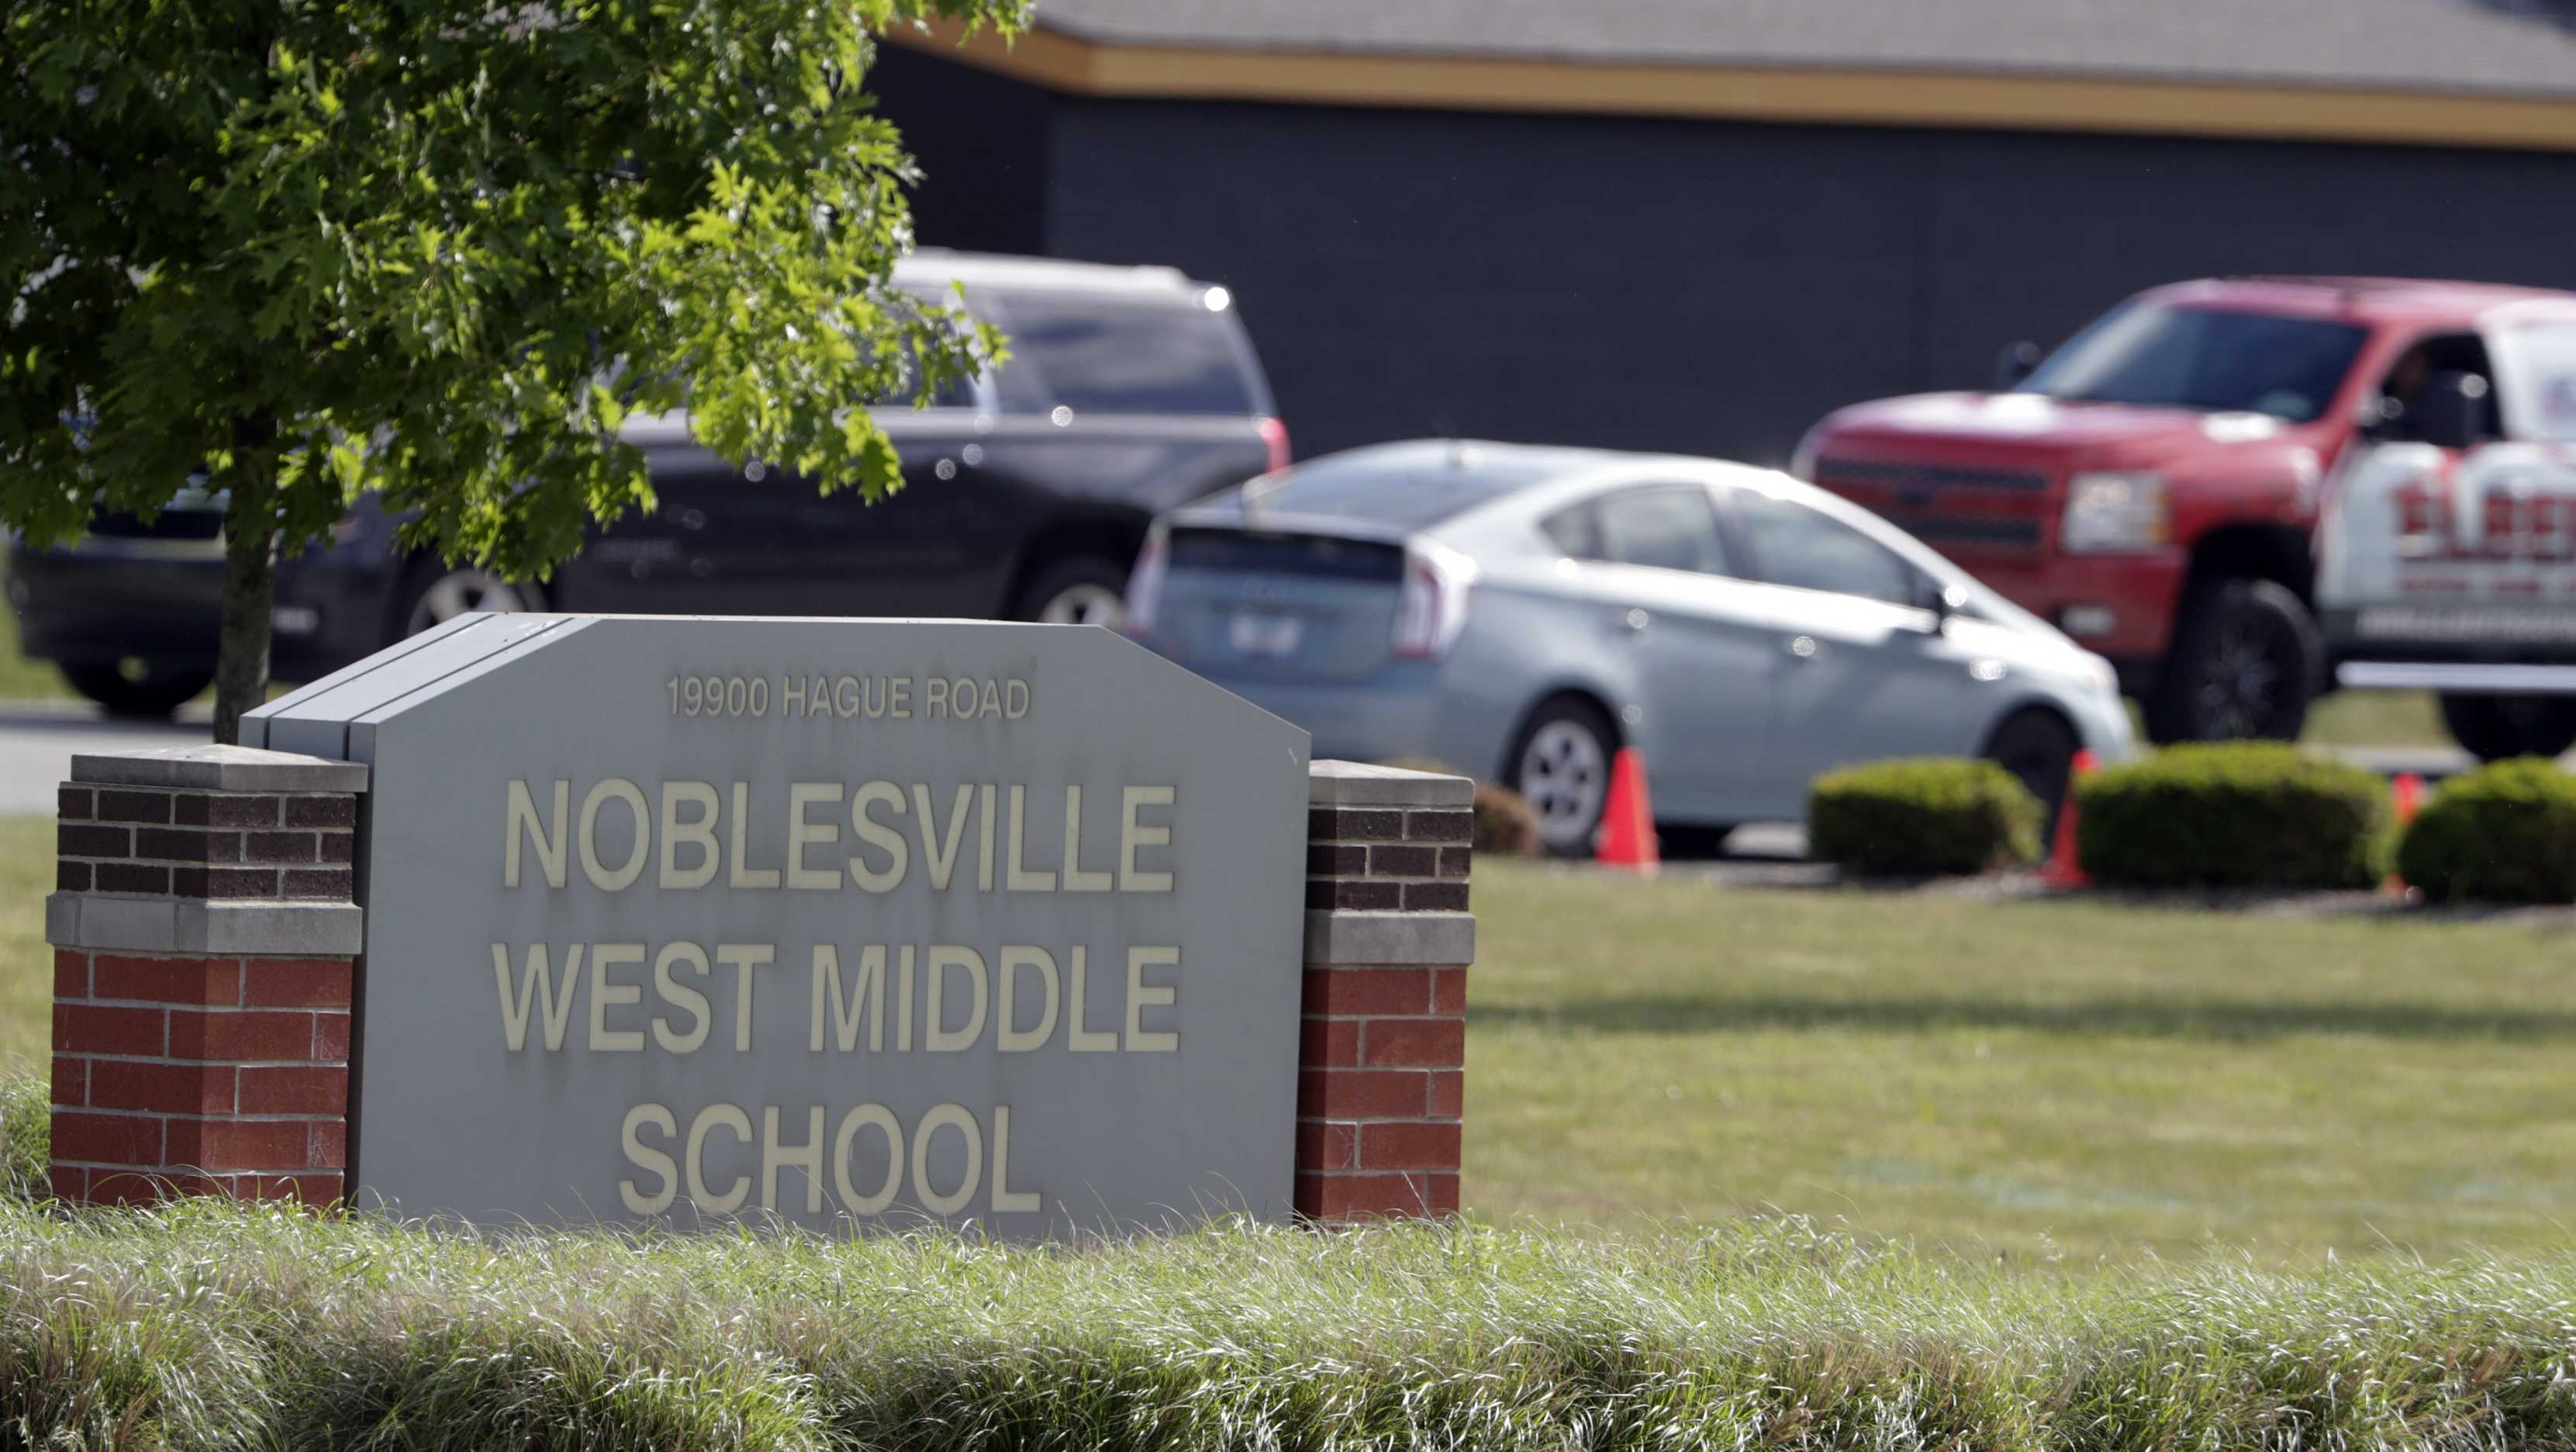 Parents drive students to school at Noblesville West Middle School a week after a shooting in Noblesville, Ind., Wednesday, May 30, 2018.